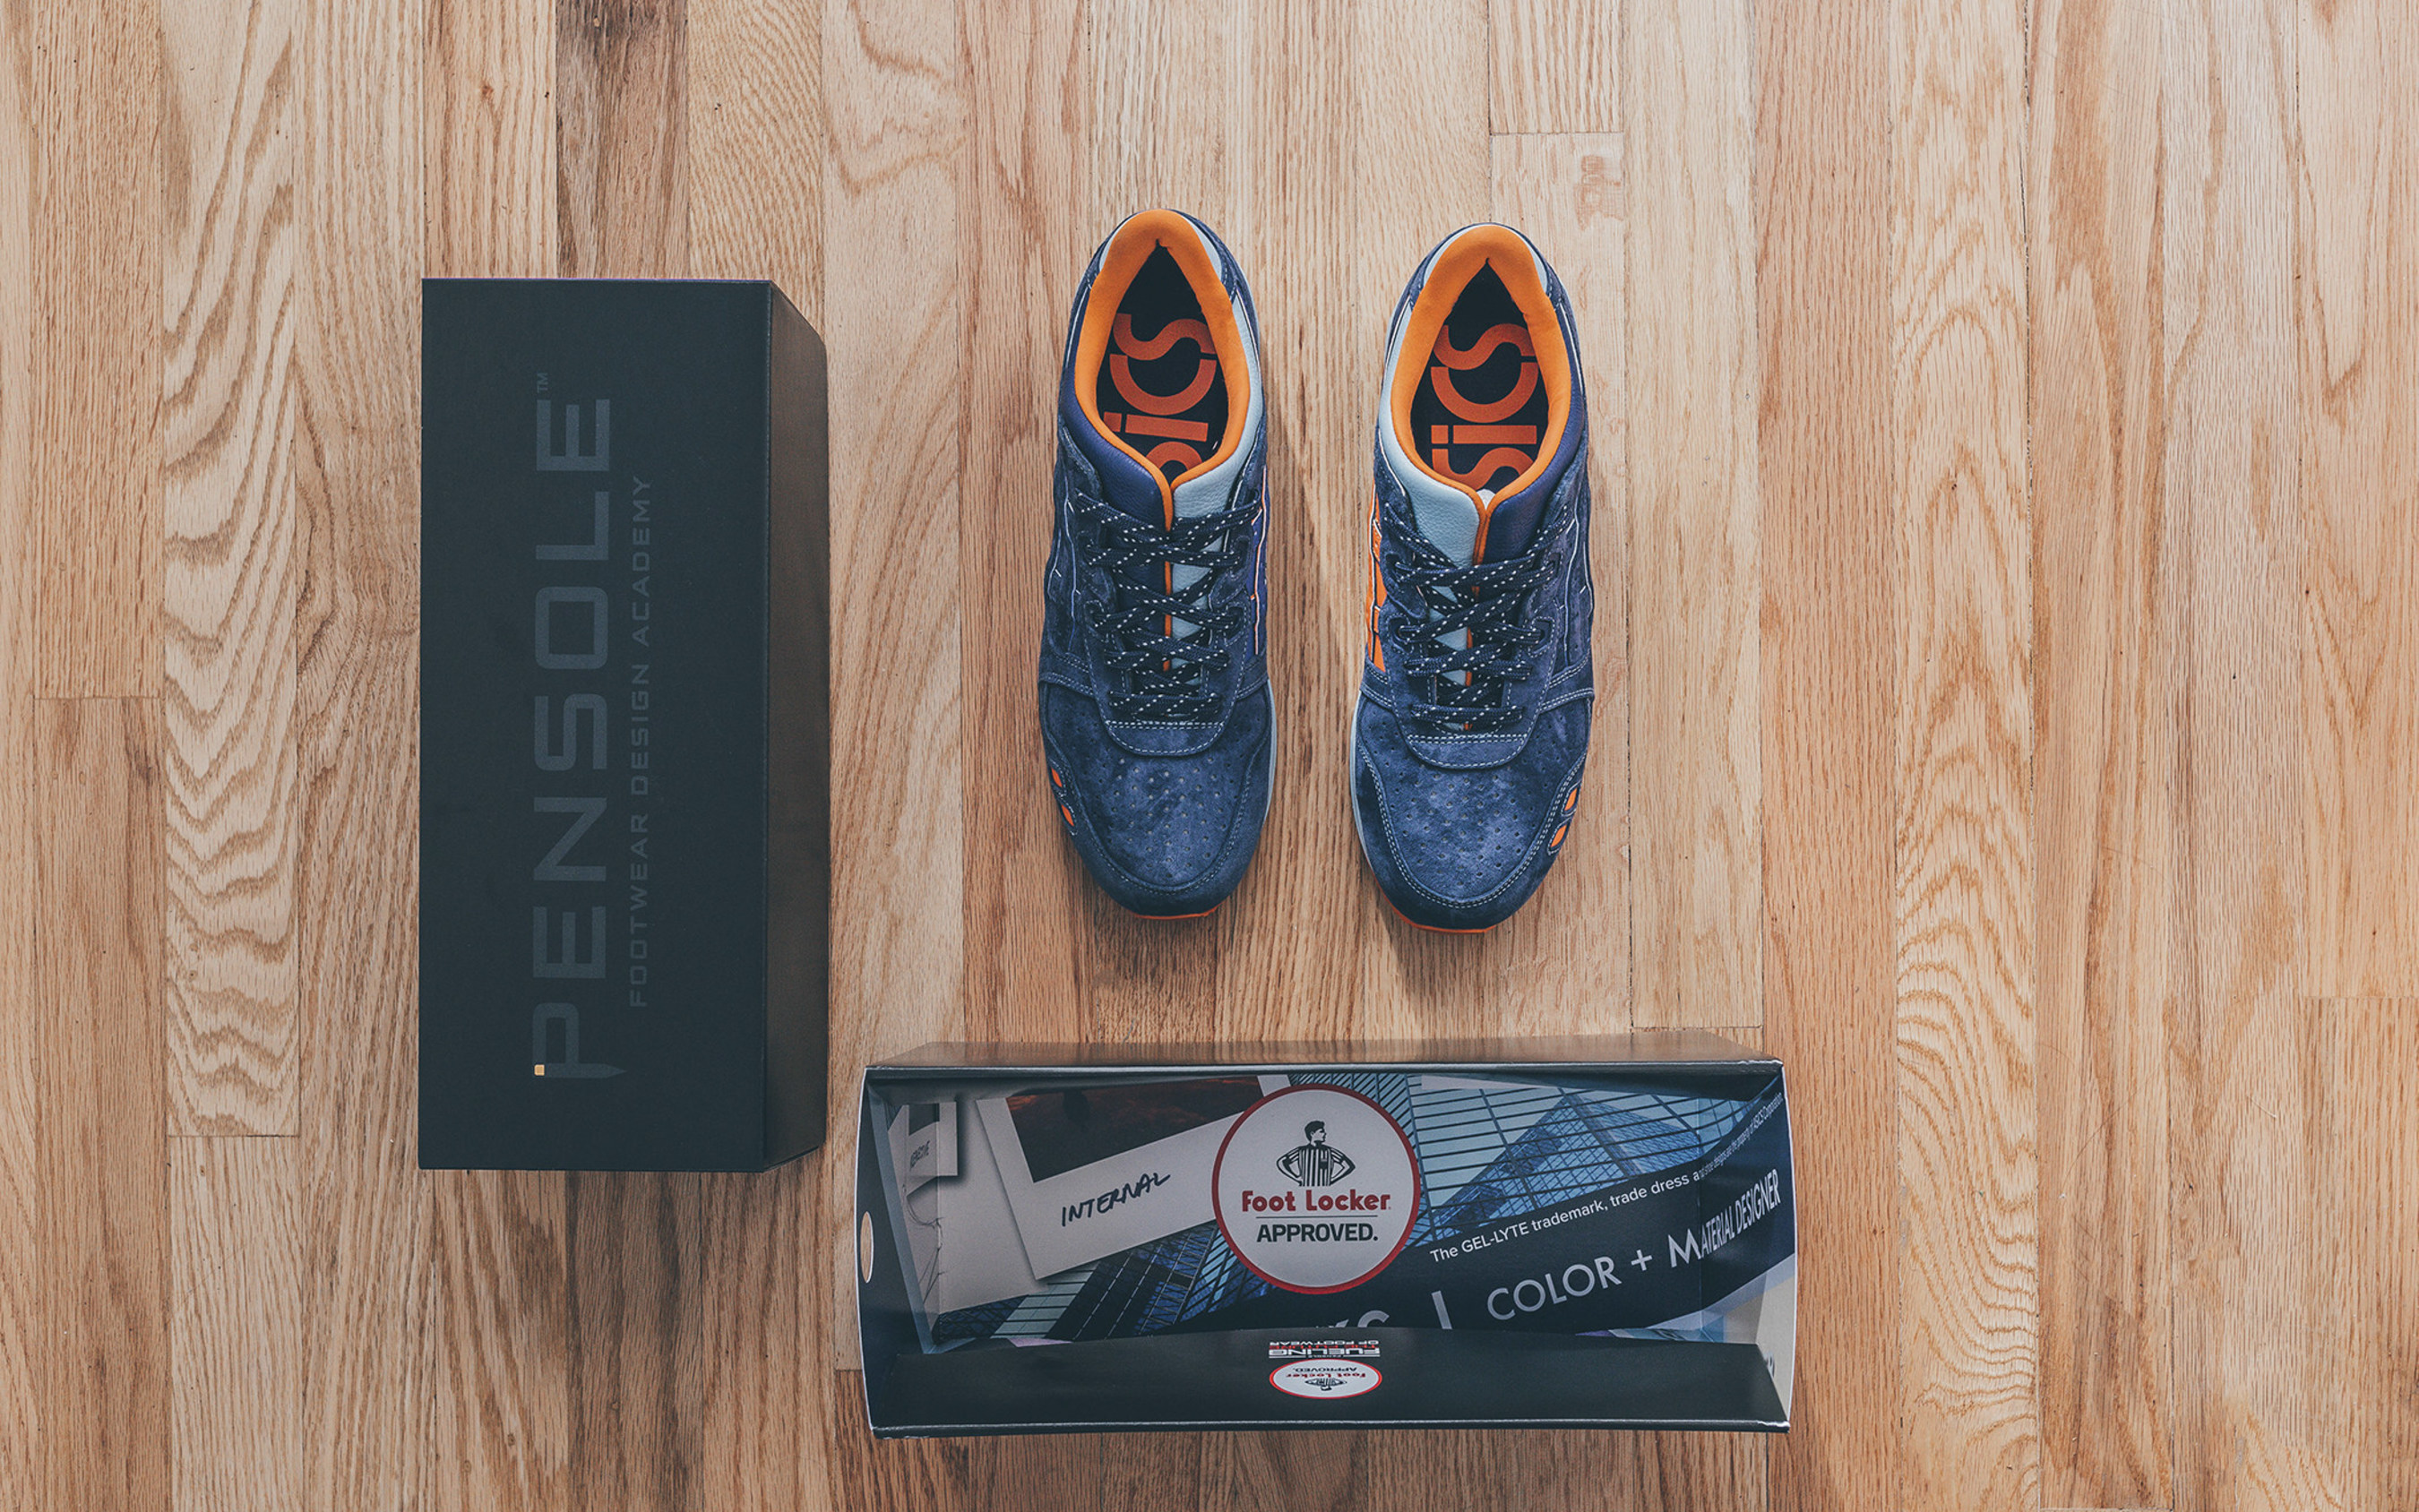 """The special-edition ASICS GEL-Lyte(R) III """"PENSOLE Reflect"""" sneaker design will be available globally, in limited quantities, at select Foot Locker stores on Sept. 17, 2016."""